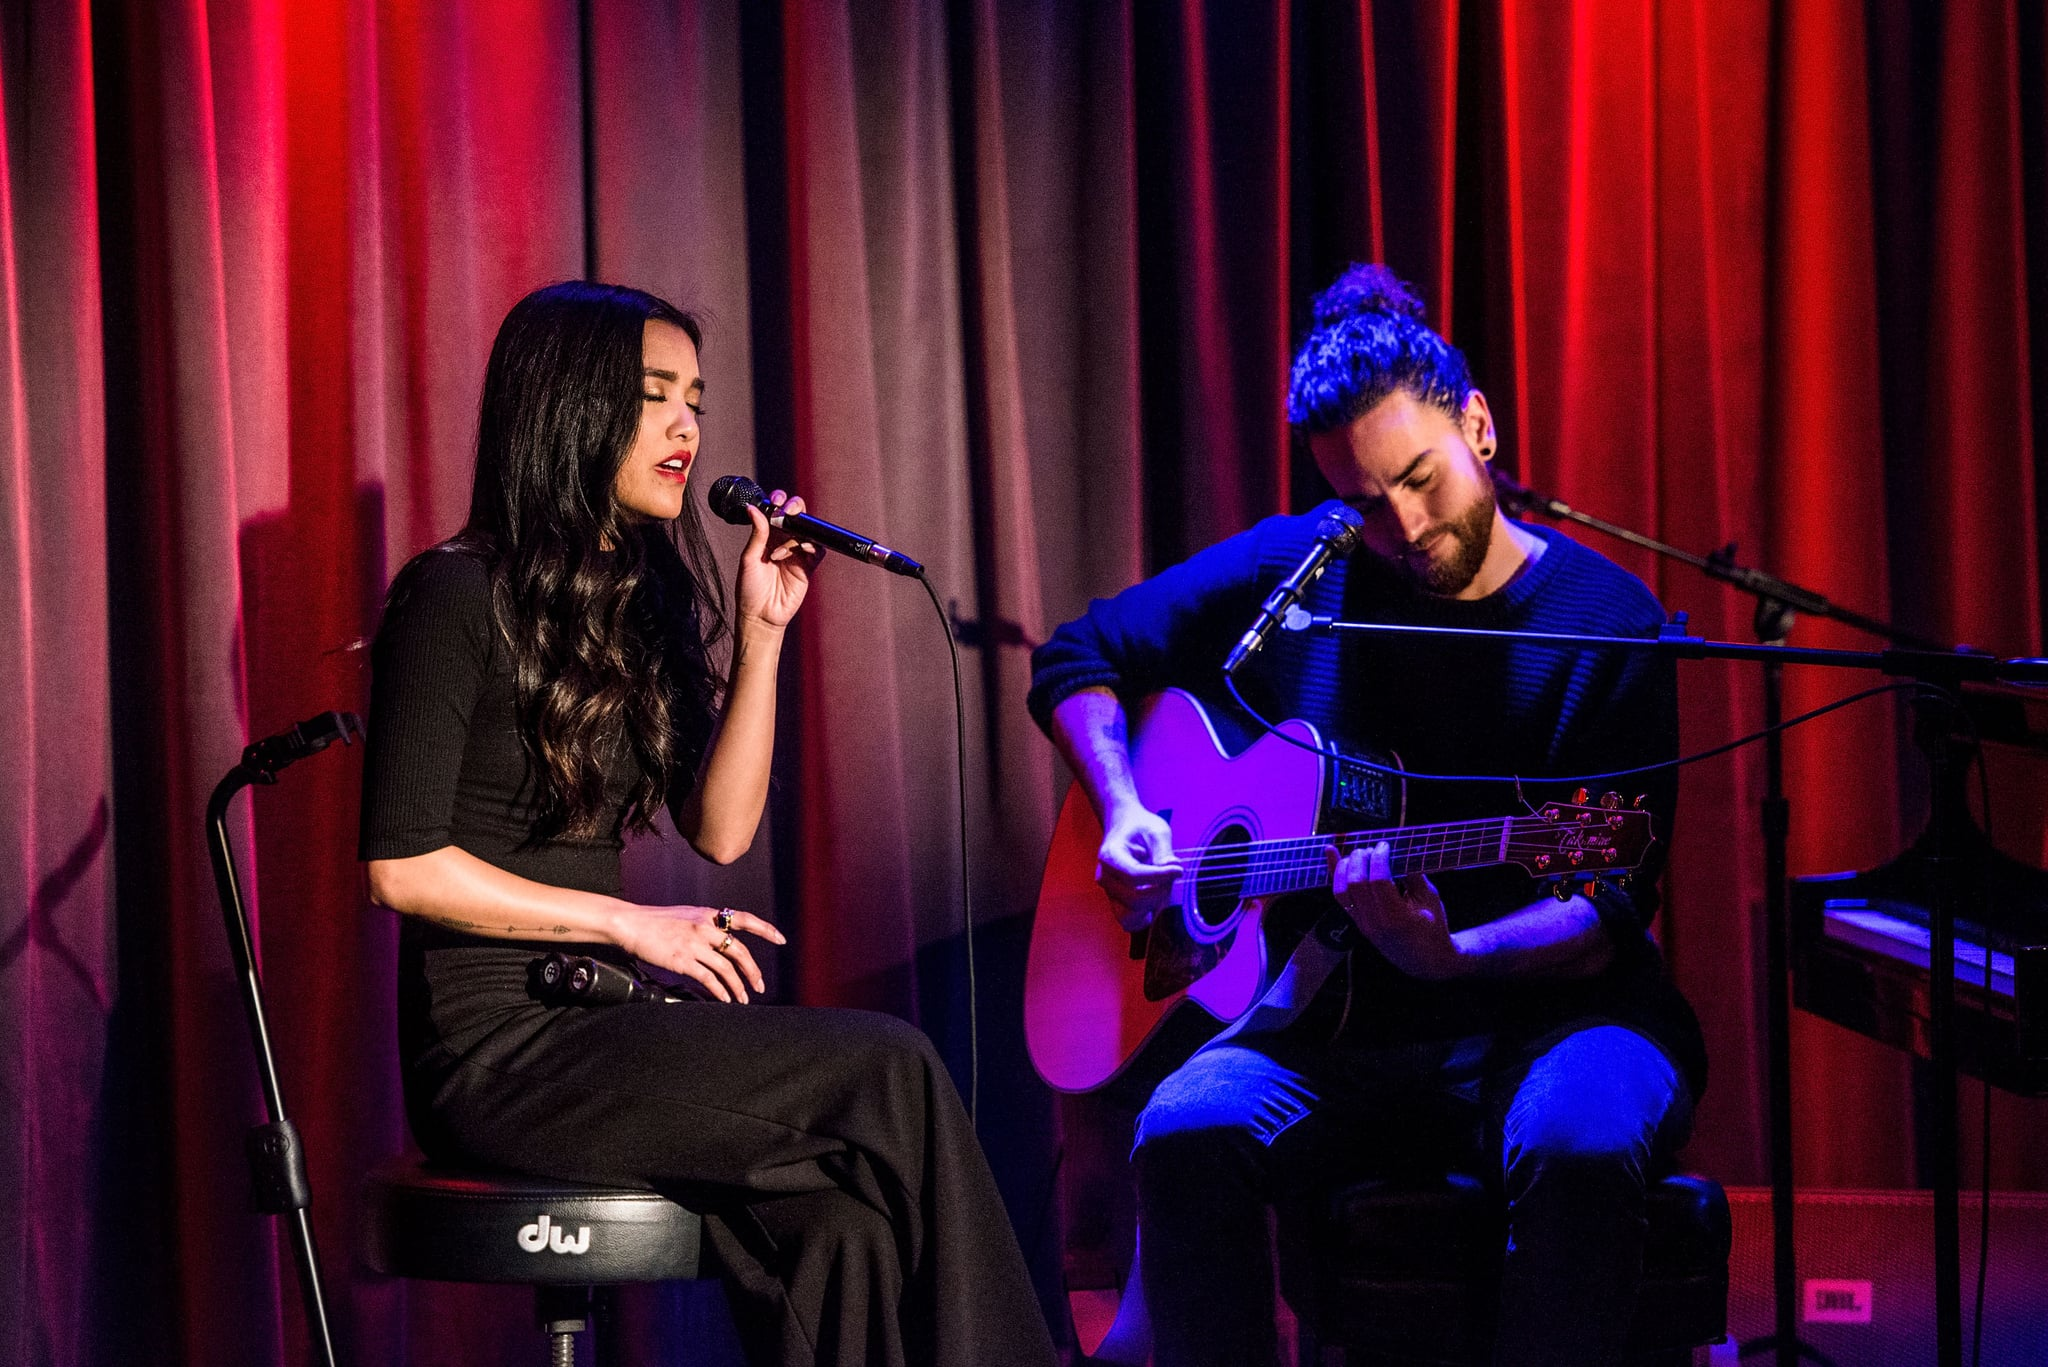 LOS ANGELES, CA - DECEMBER 14:  Carissa Alvarado and Michael Alvarado perform during The Drop: Us The Duo at The GRAMMY Museum on December 14, 2016 in Los Angeles, California.  (Photo by Timothy Norris/Getty Images)